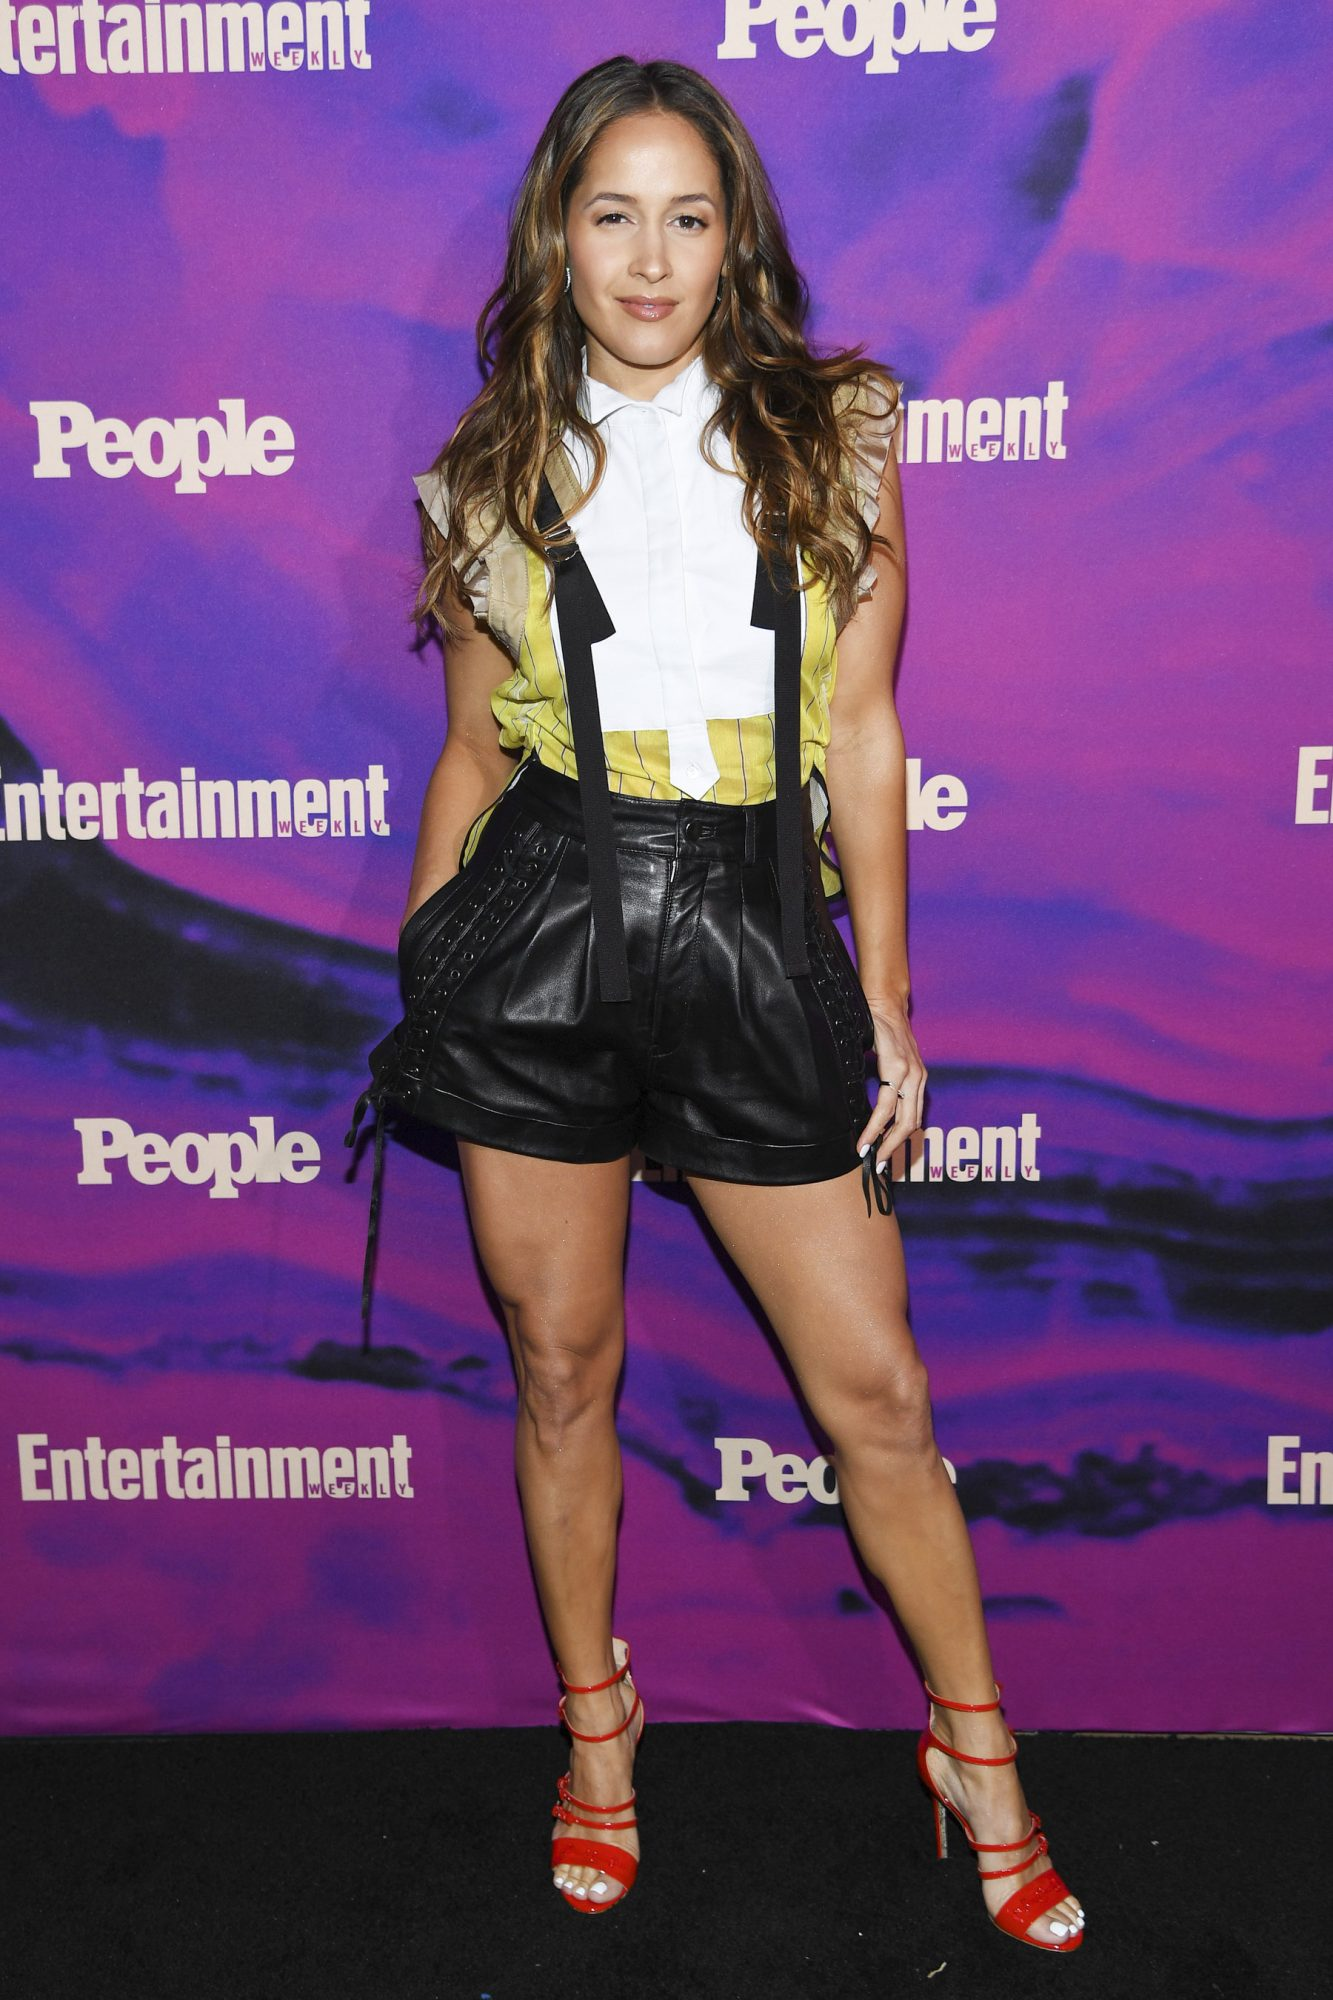 NEW YORK, NEW YORK - MAY 13: Jaina Lee Ortiz of Station 19 attends the Entertainment Weekly & PEOPLE New York Upfronts Party on May 13, 2019 in New York City. (Photo by Dimitrios Kambouris/Getty Images for Entertainment Weekly & PEOPLE)